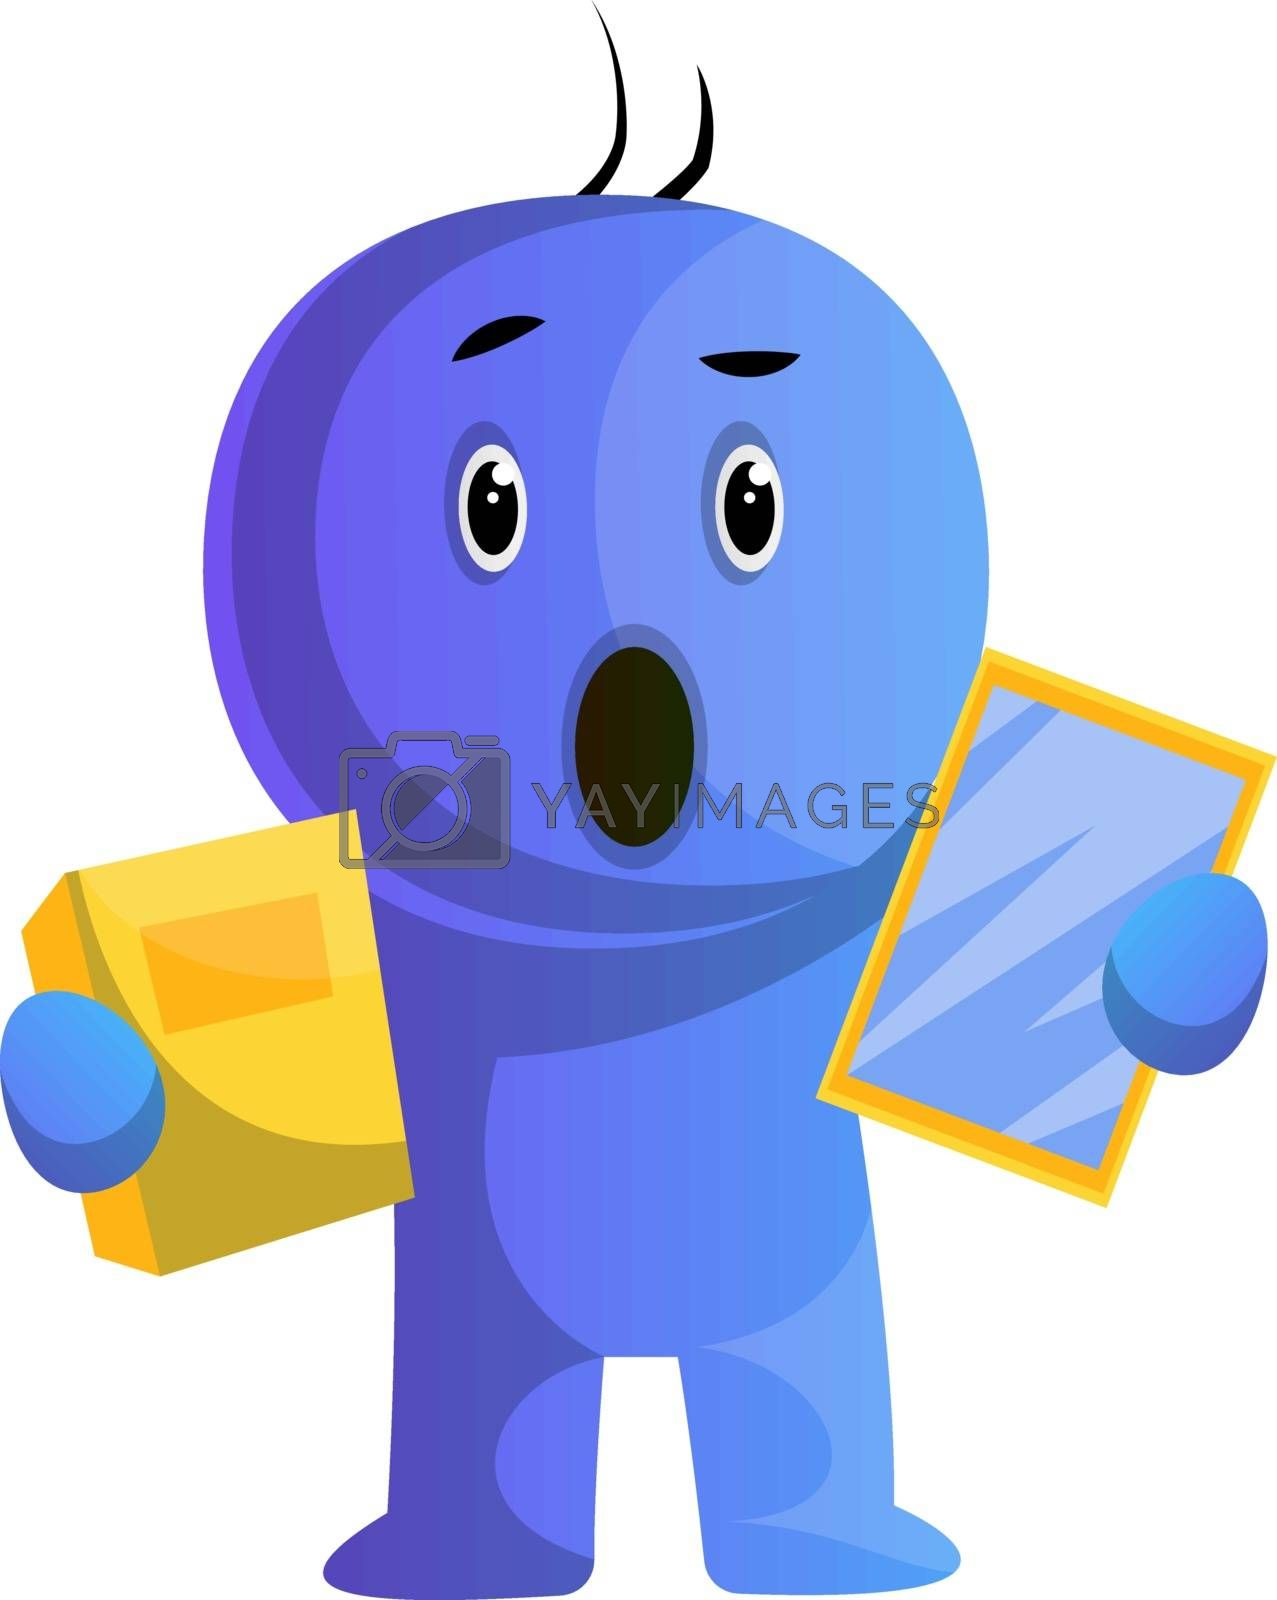 Royalty free image of Blue cartoon caracter surprised face illustration vector on whit by Morphart